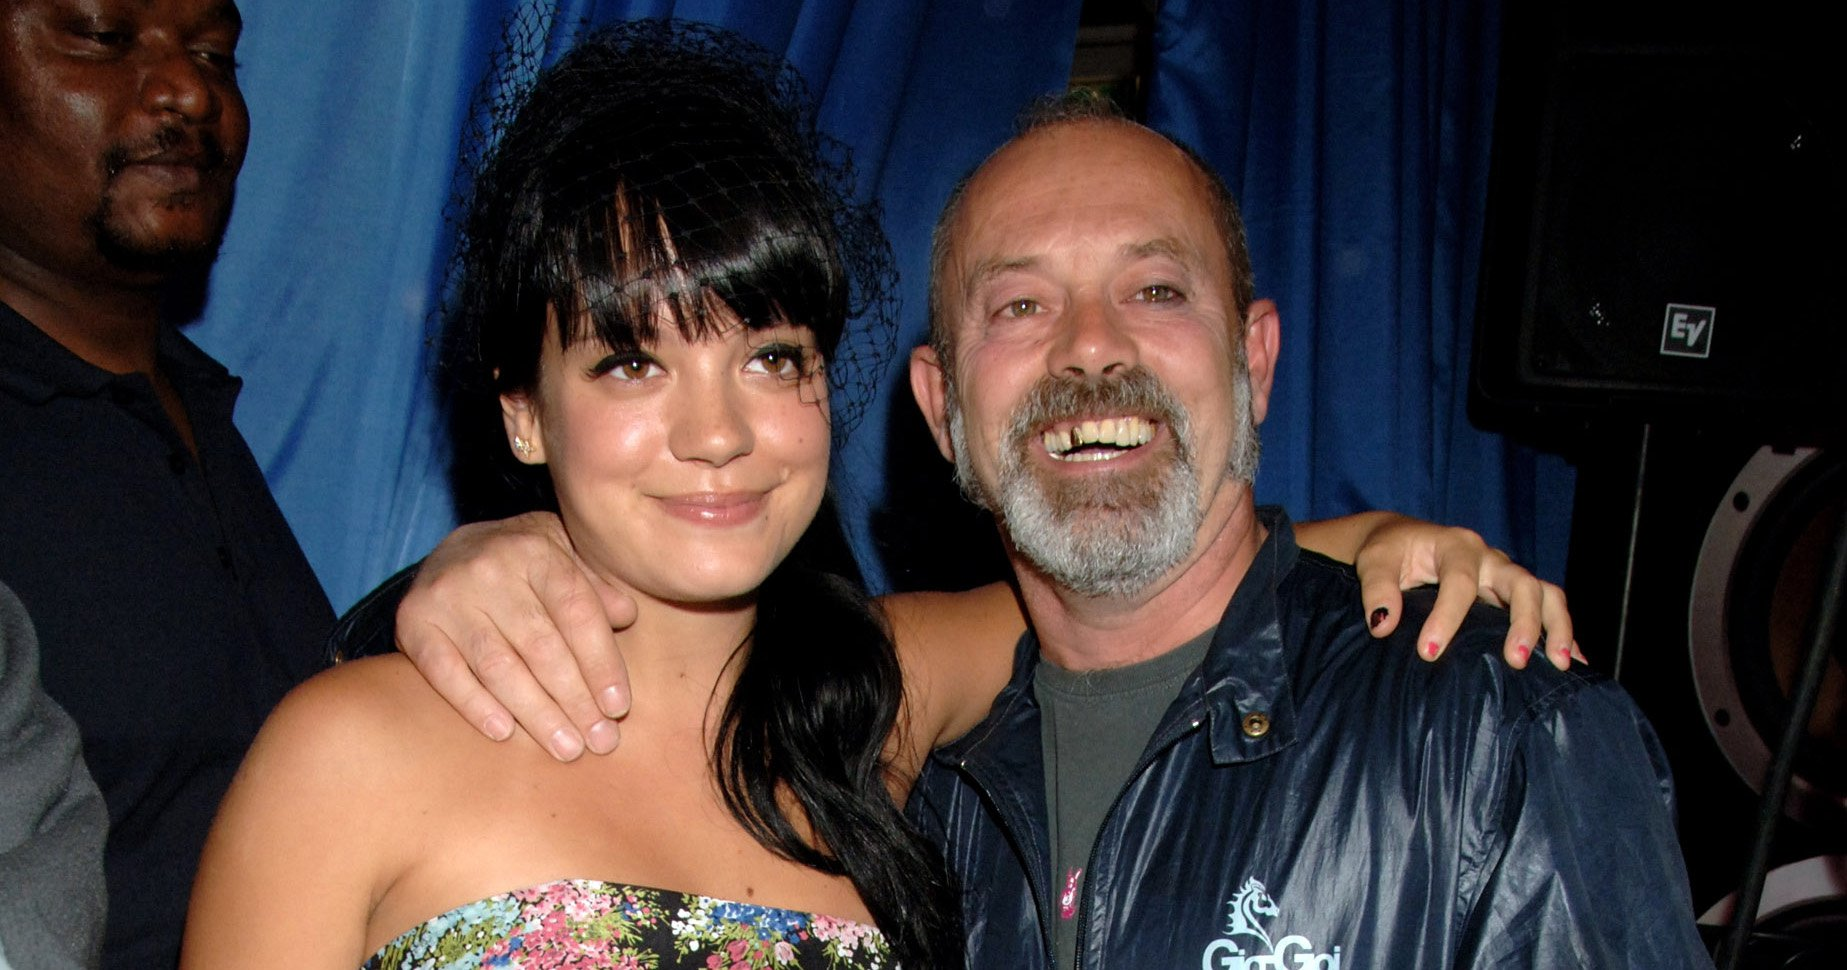 Lily Allen claims father's famous friend had sex with her in a hotel room at the age of 14